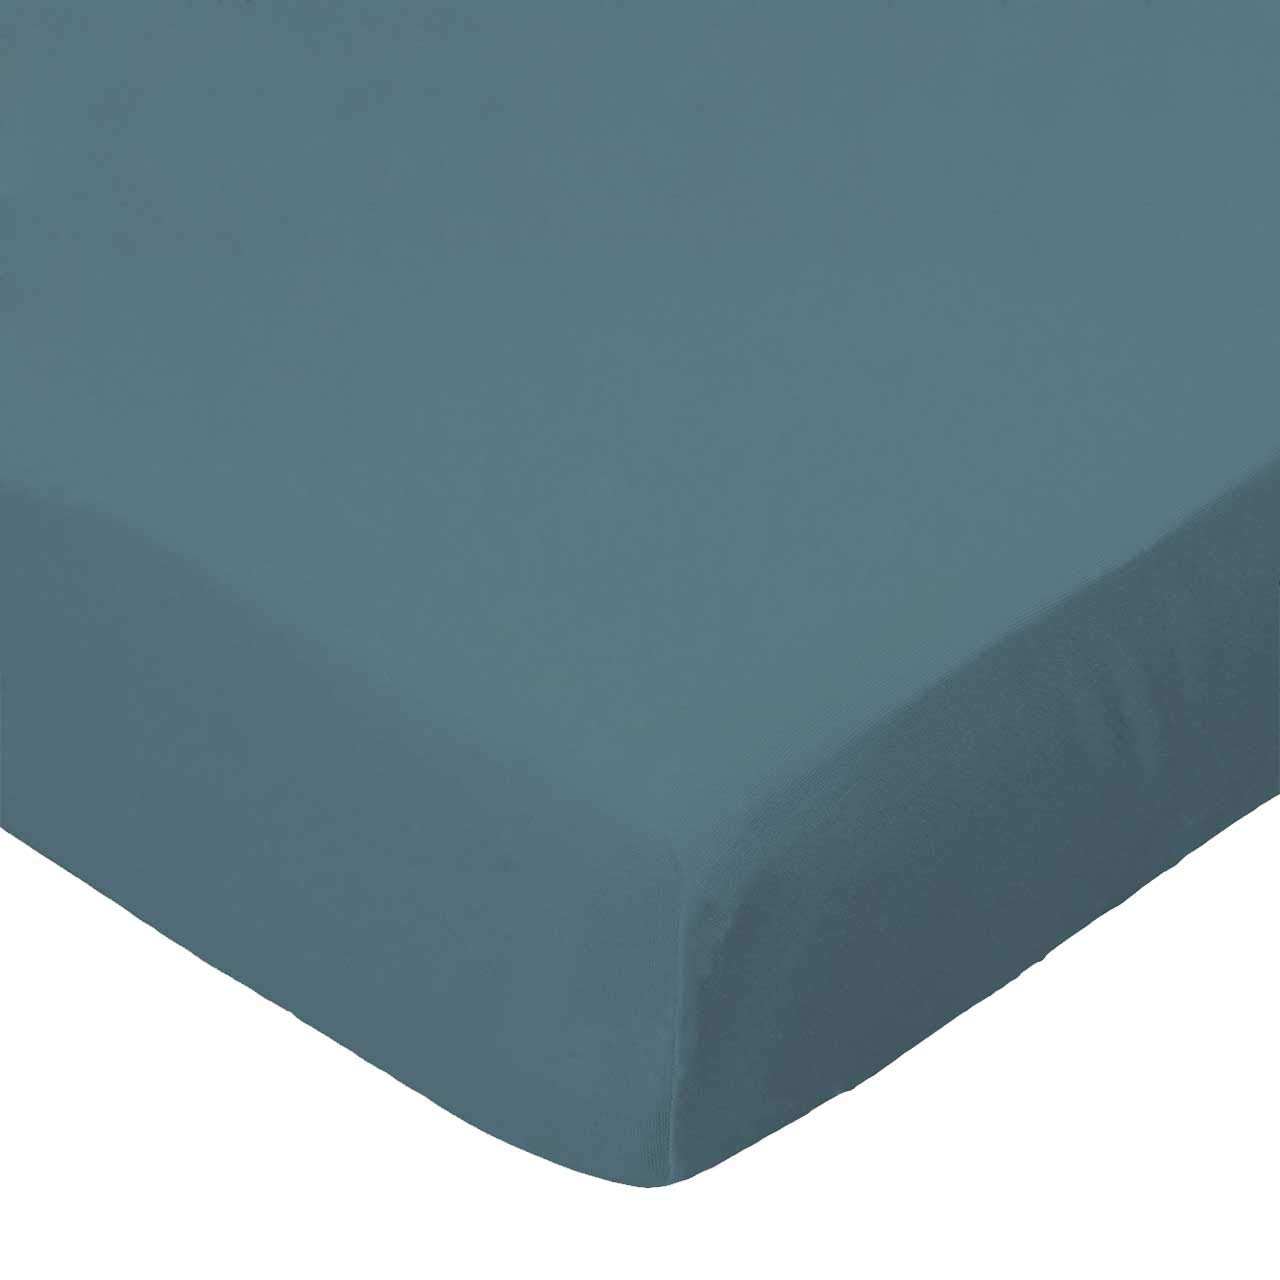 SheetWorld Fitted Bassinet Sheet - Solid Teal Woven - Made In USA by sheetworld   B00BXLB7JS